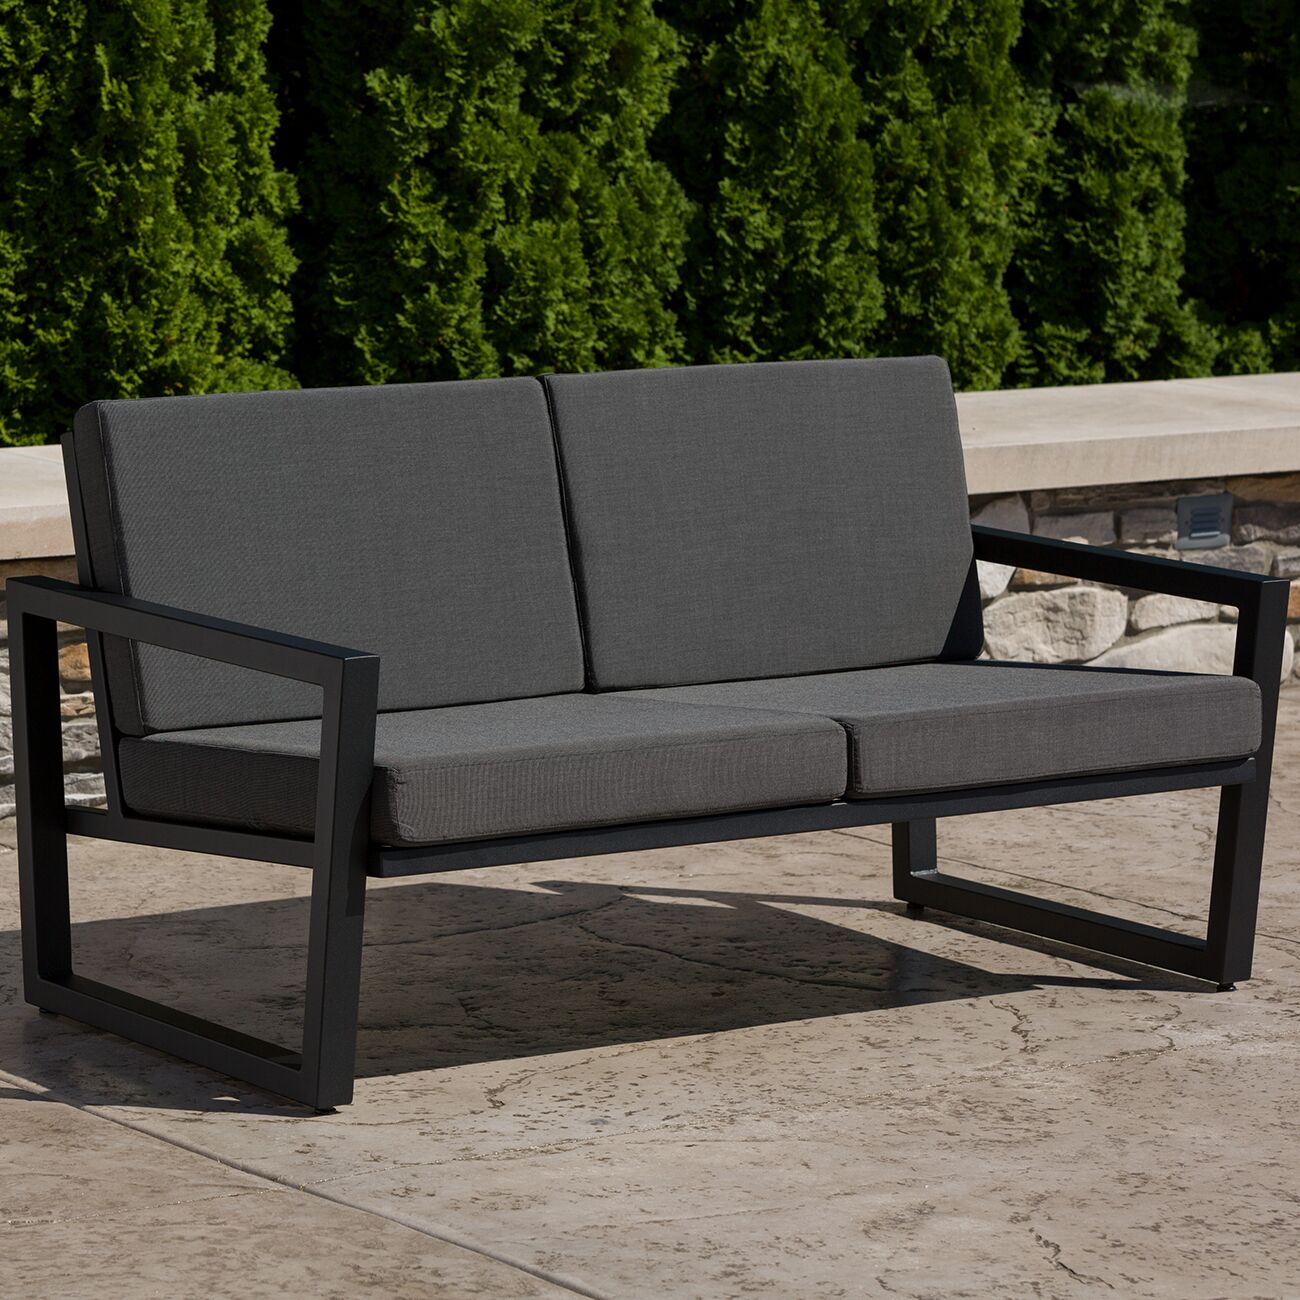 Vero Loveseat with Cushions Finish: Textured Black, Fabric: Charcoal